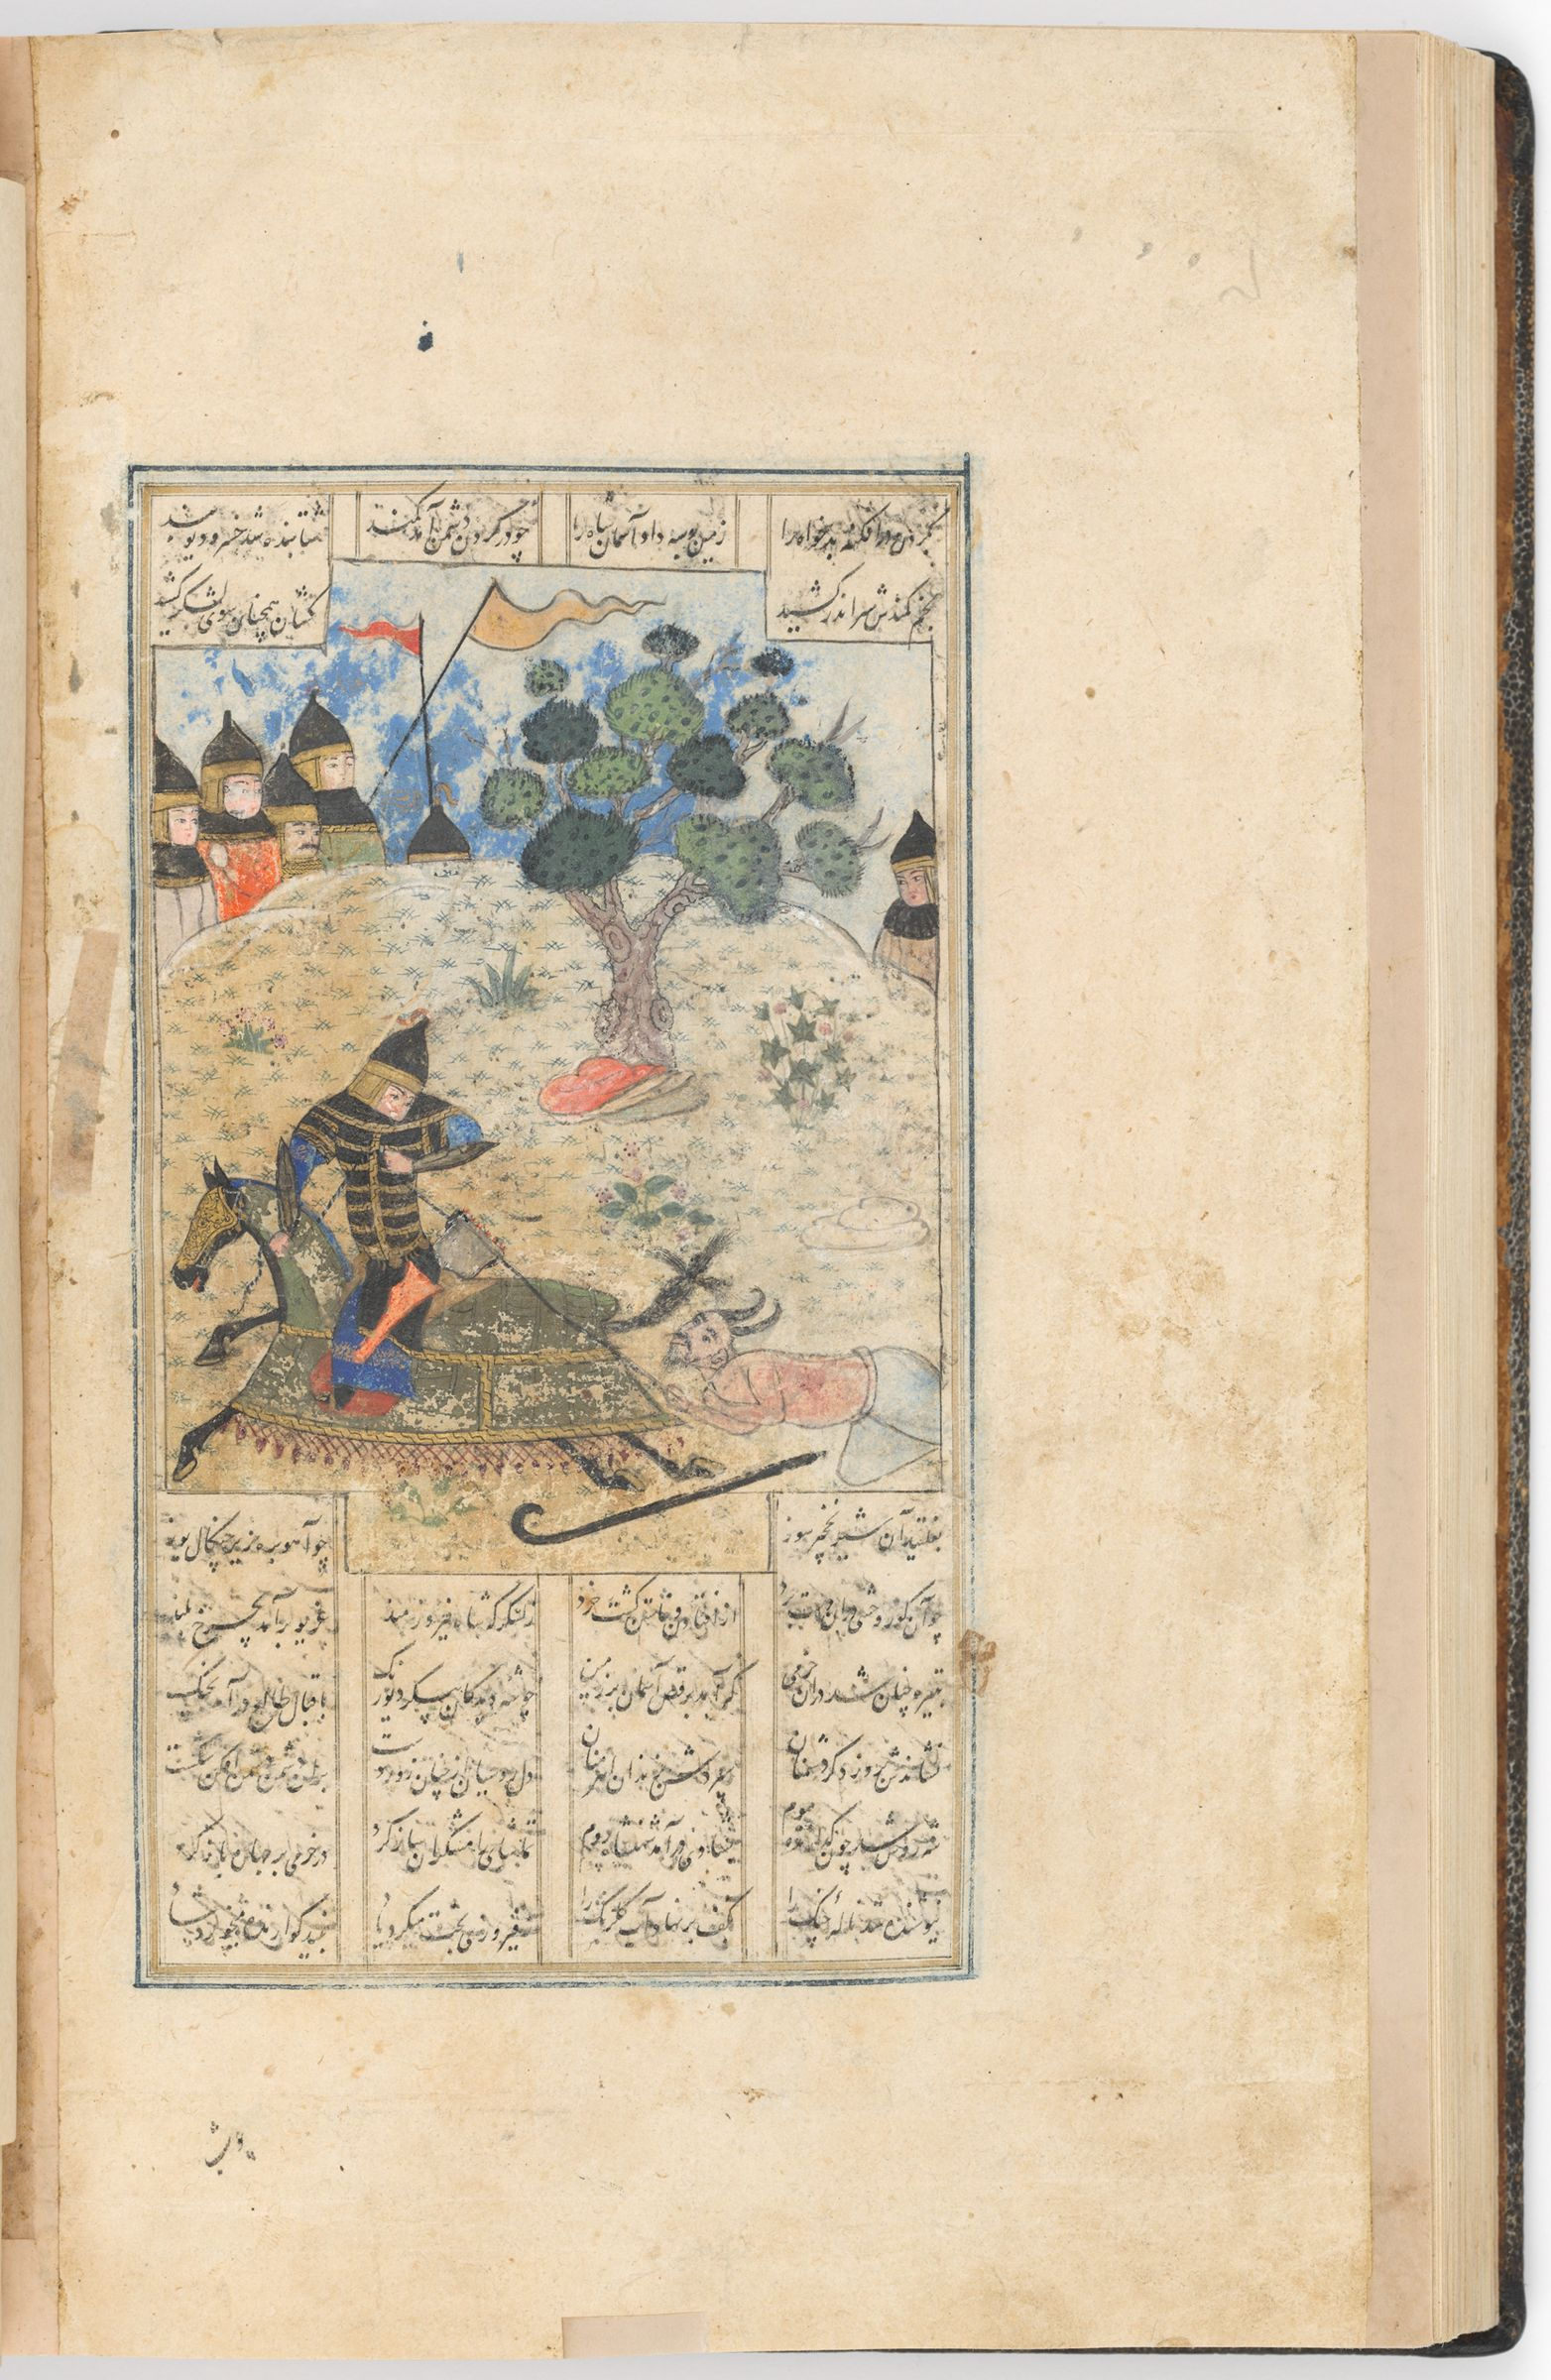 Iskandar Lassoing The Russian Demon (Text Recto; Painting Verso Of Folio 163), Painting From A Manuscript Of The Khamsa By Nizami